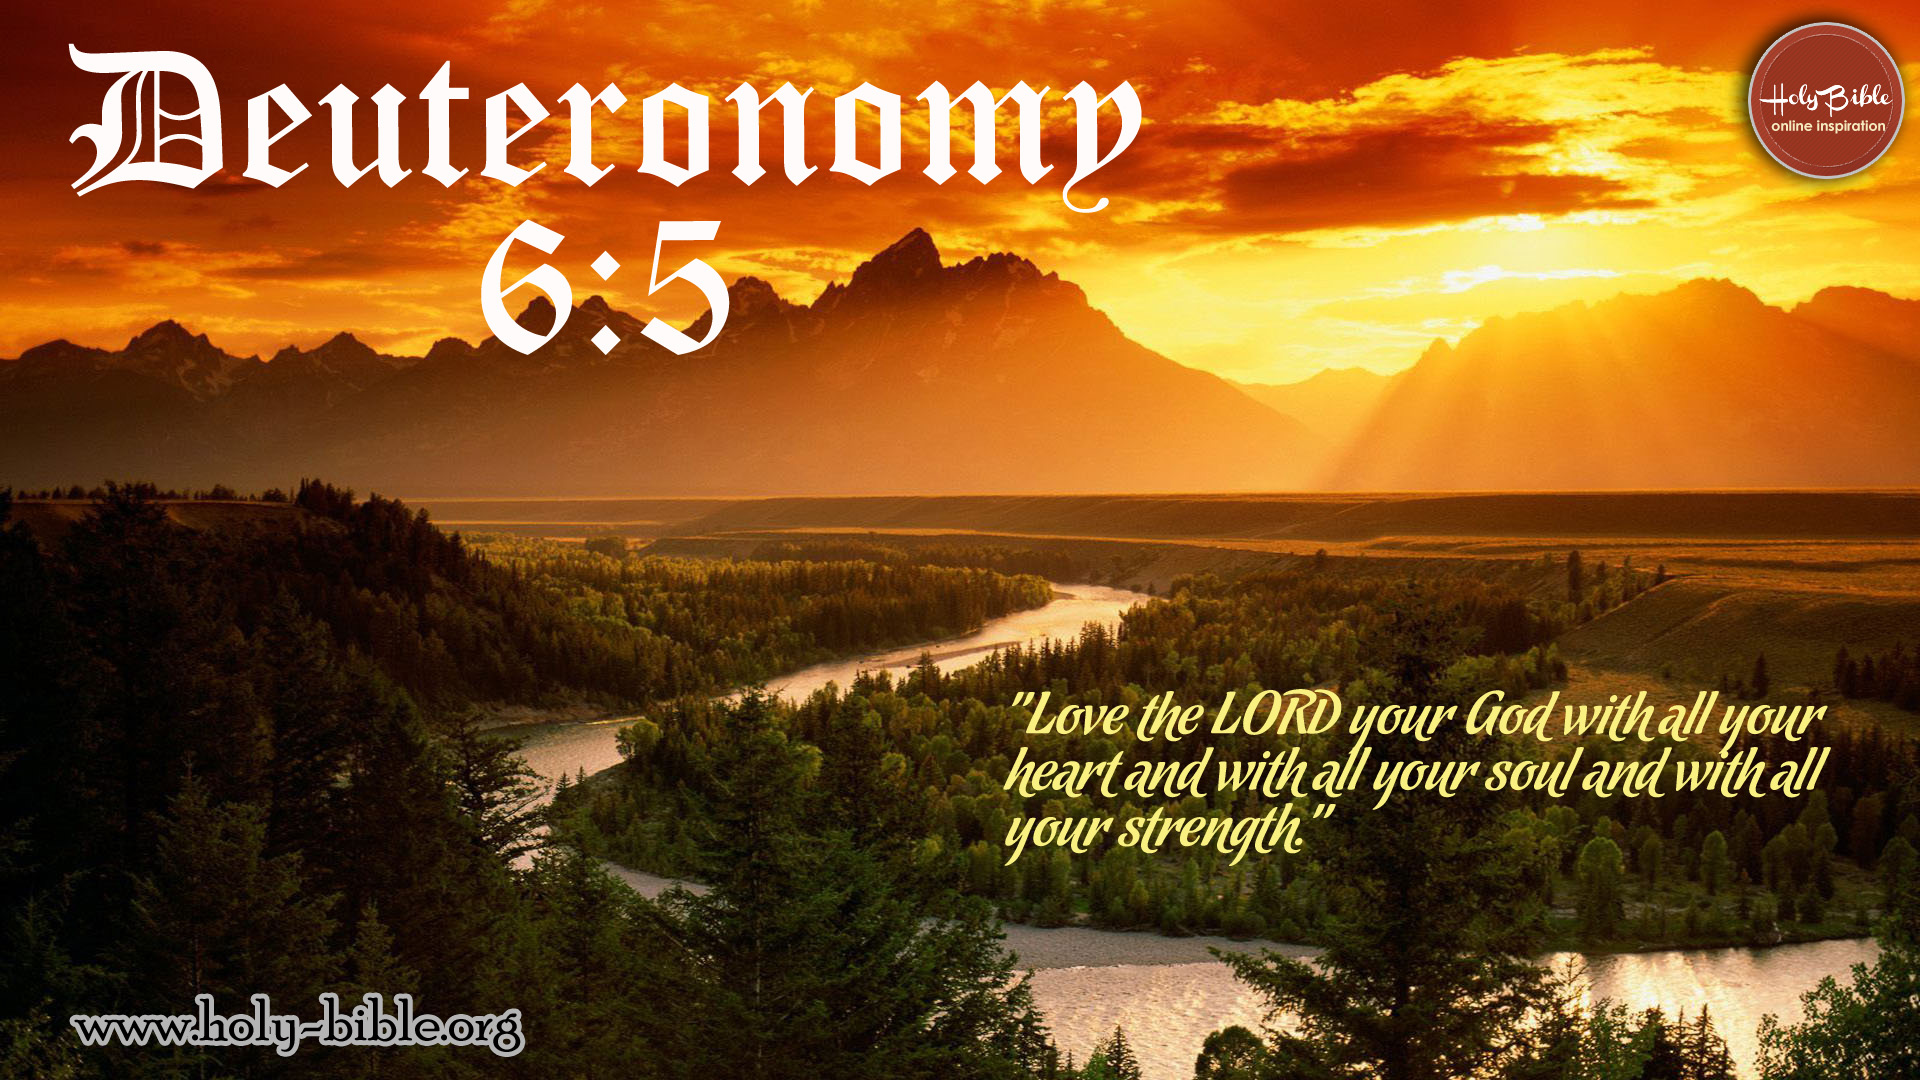 Bible Verse of the day - Deuteronomy 6:5